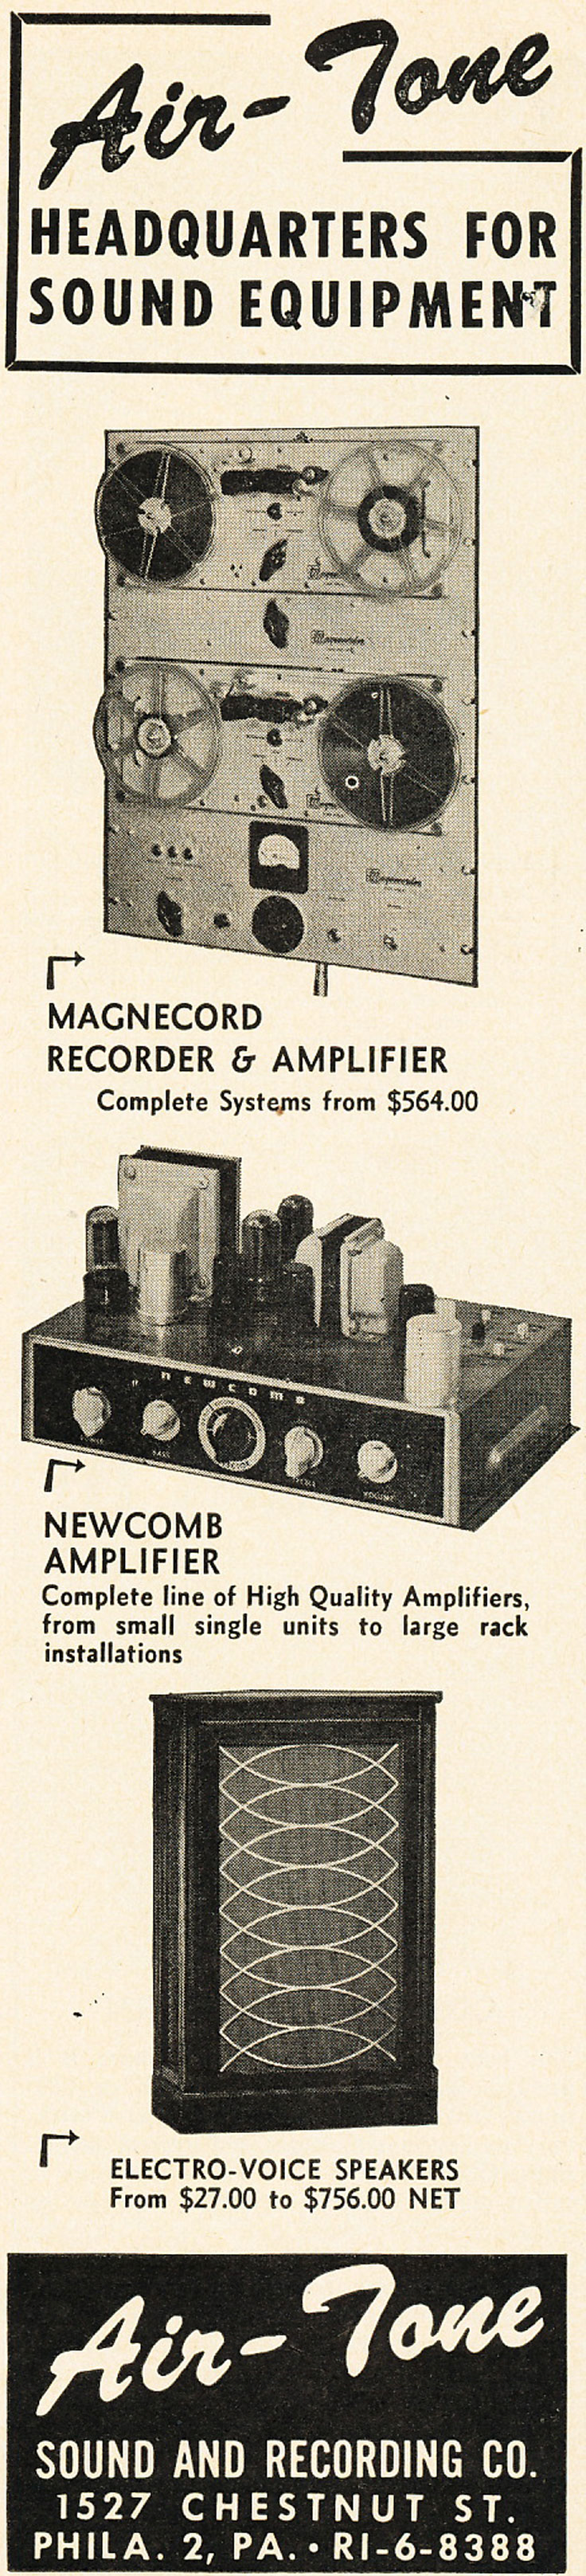 1952 Airtone ad featuring Magnecord reel tape recorders in   Reel2ReelTexas.com's vintage recording collection.